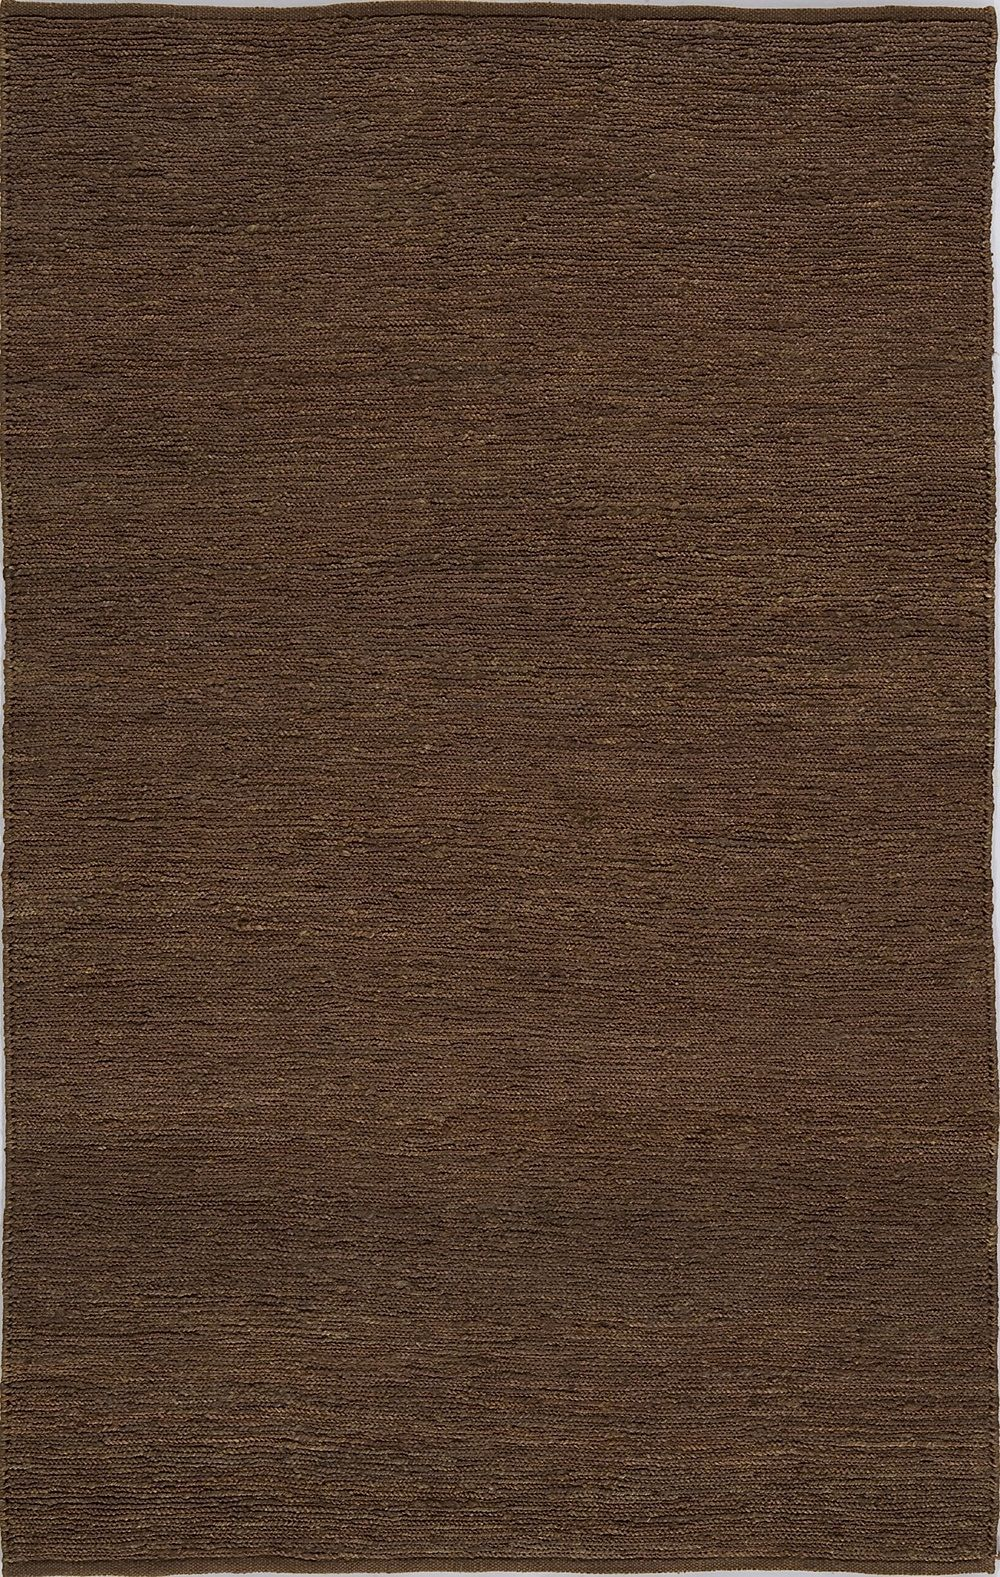 rugs america chelsea solid/striped area rug collection